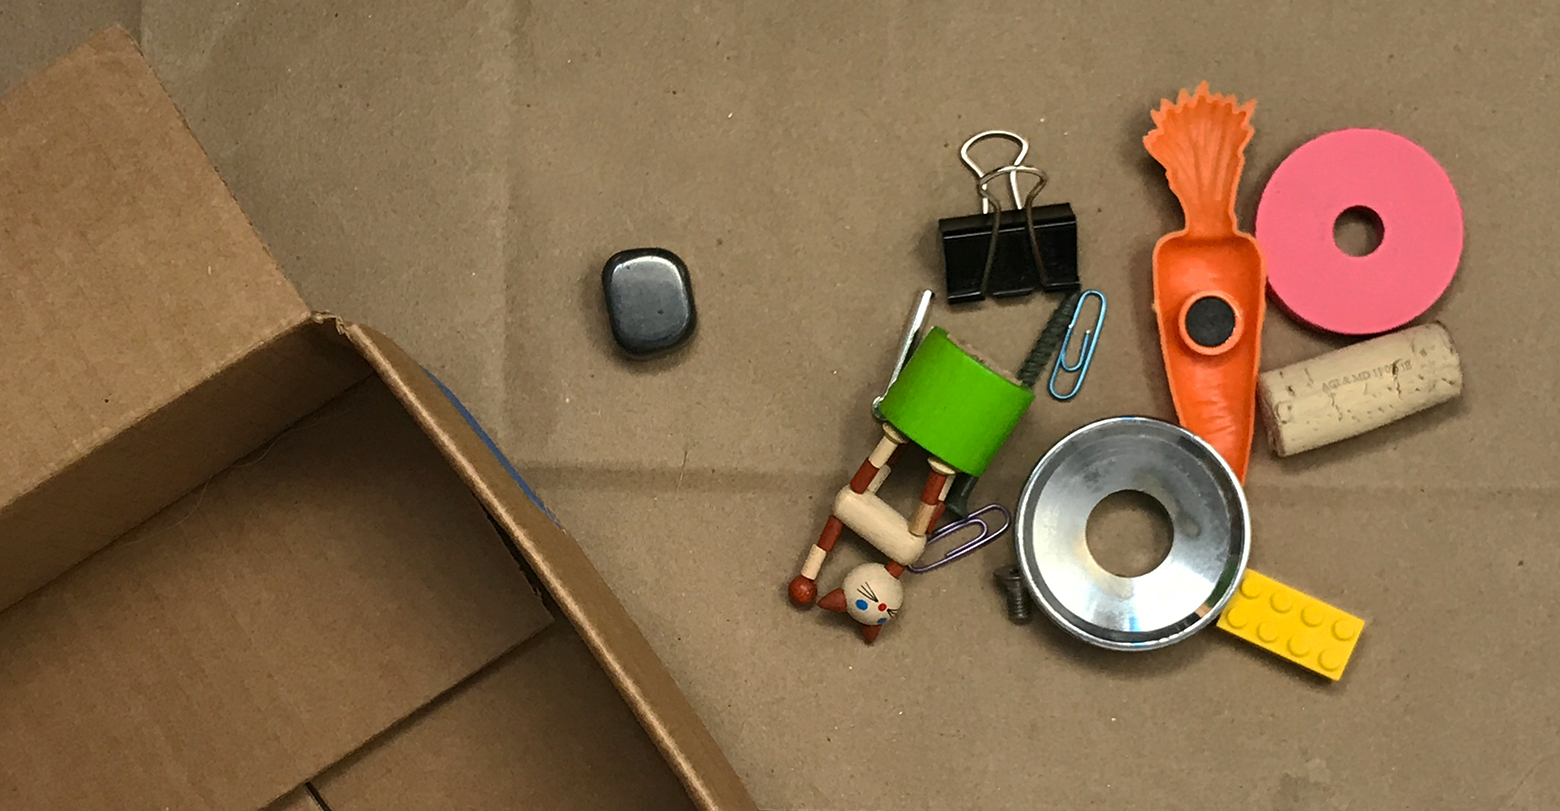 A mix of small toys and random metal and plastic objects